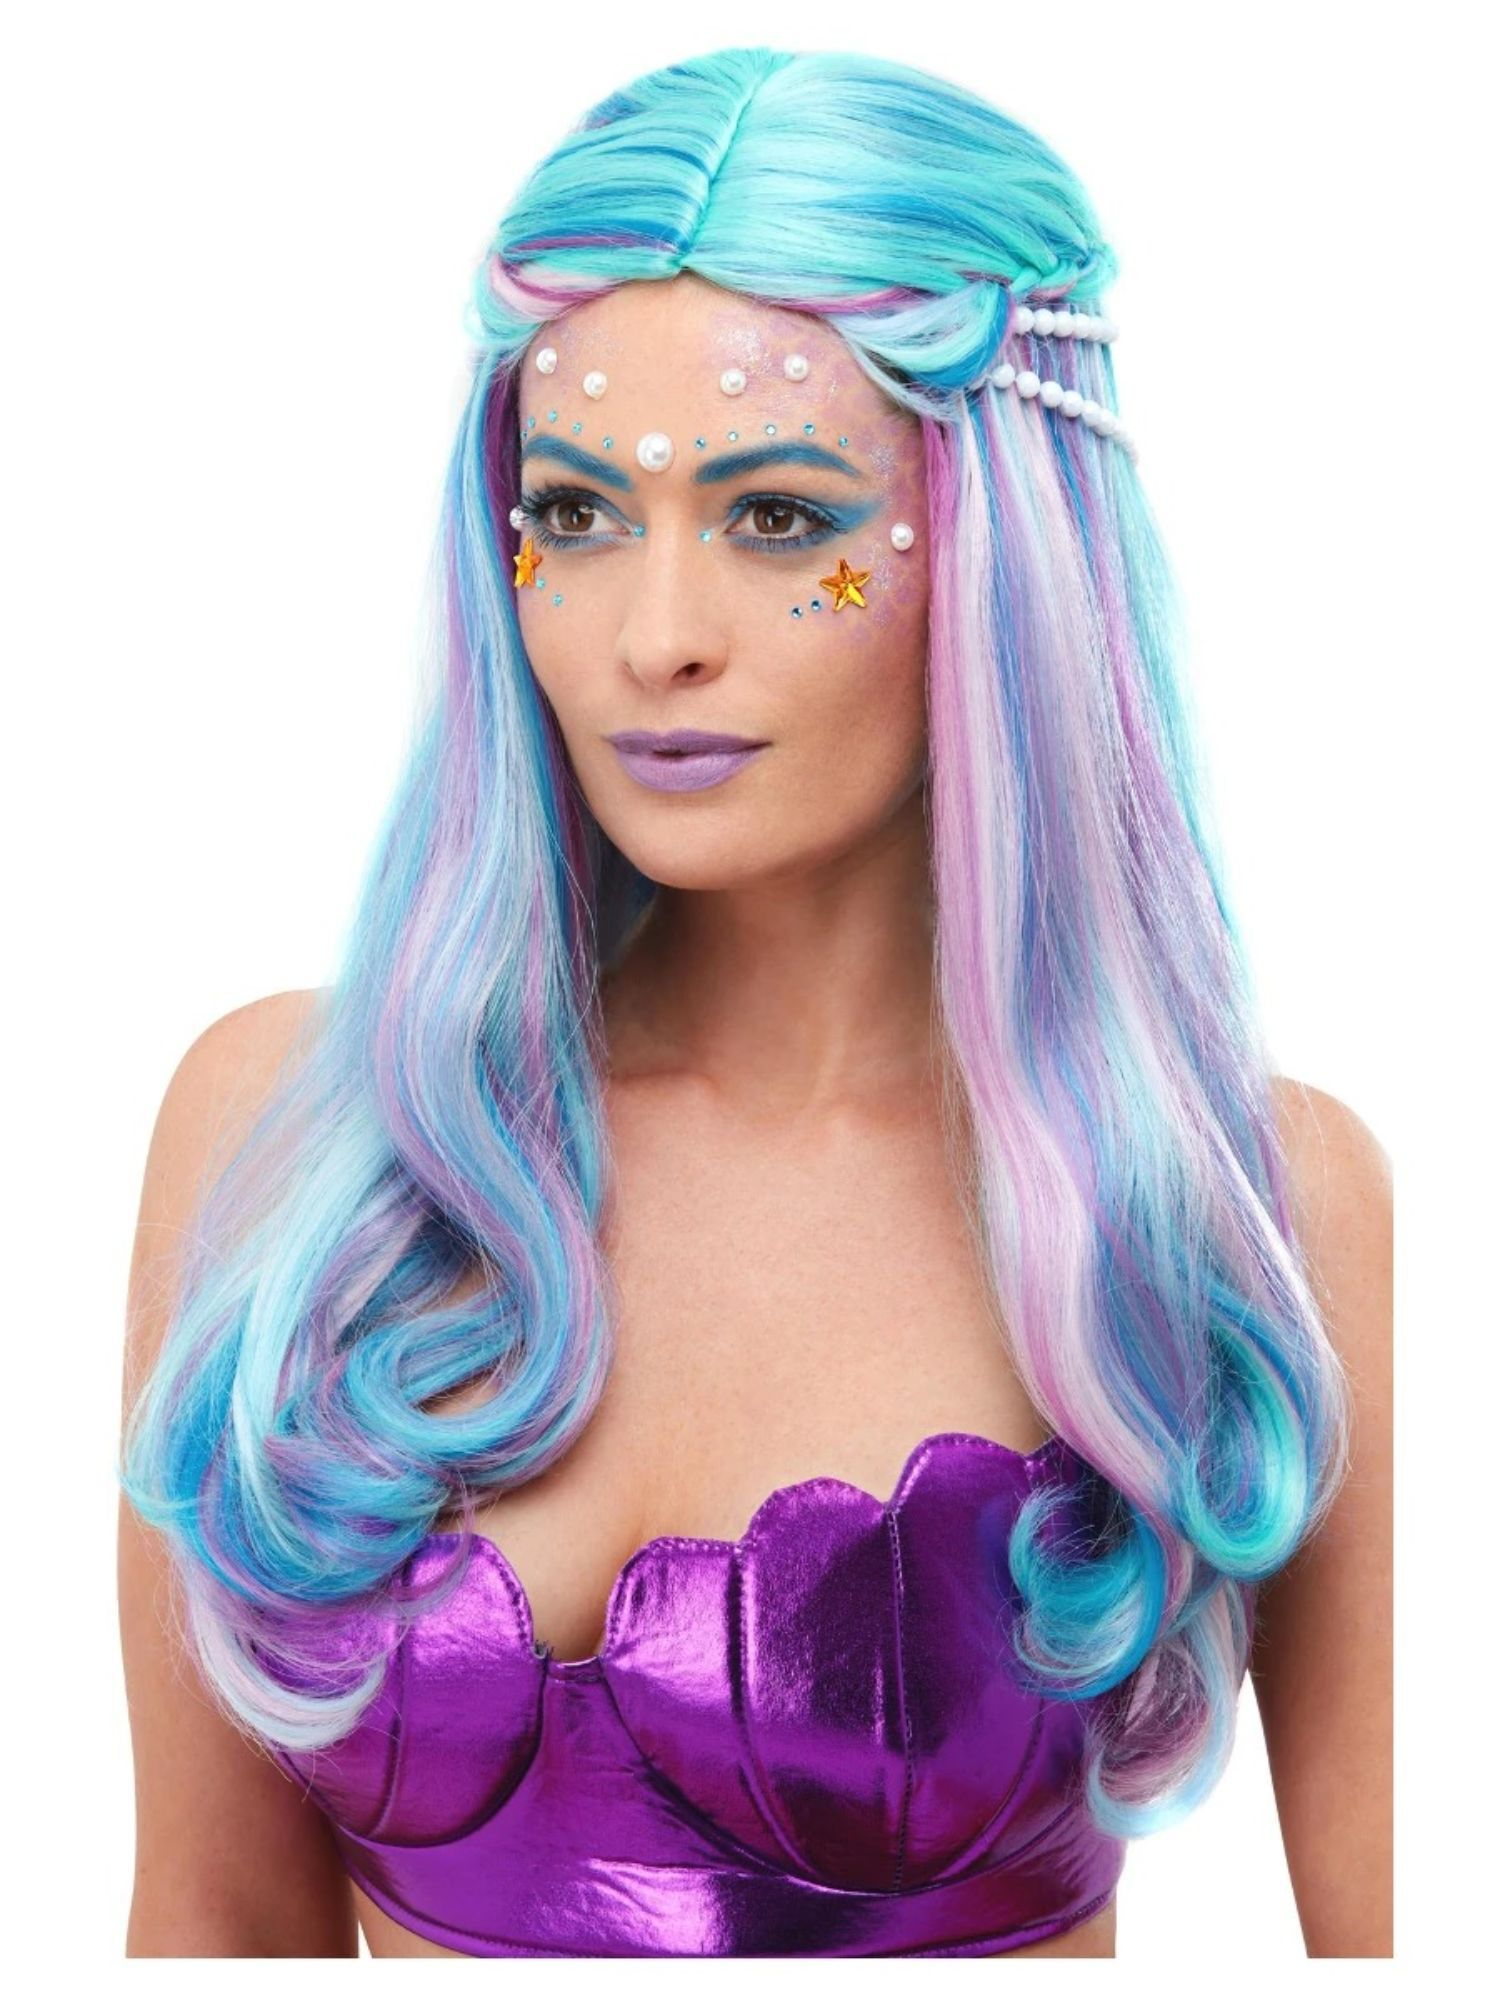 Blue Wigs Lace Frontal Wigs Cheap Human Wigs Greyish Blue Hair Silver And Blue Hair Black Hair With Blue And Purple Highlights